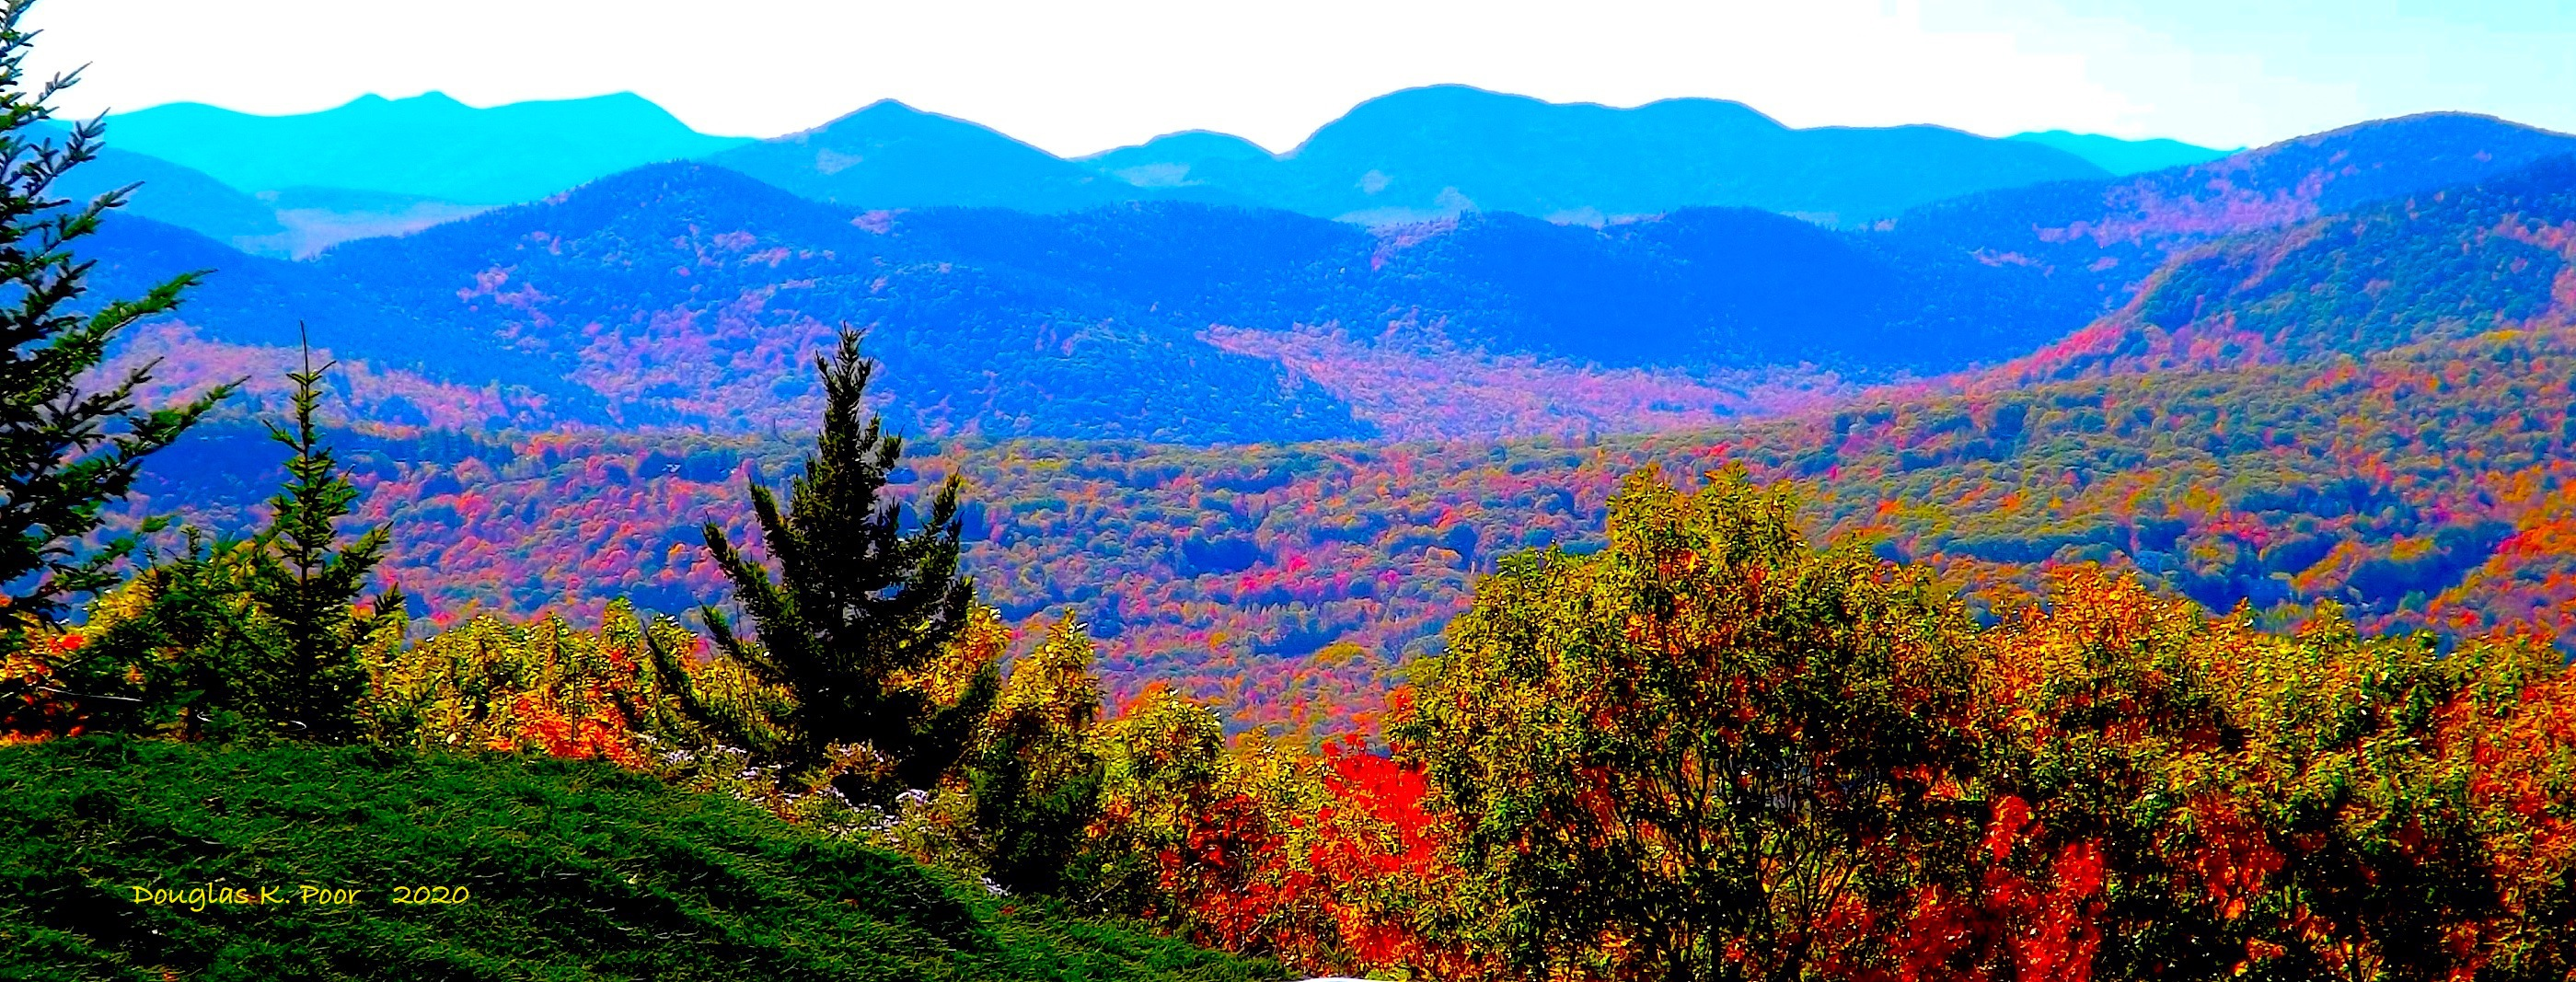 MTNS-AND-FOLIAGE==============MTNS-AND-FOLIAGE